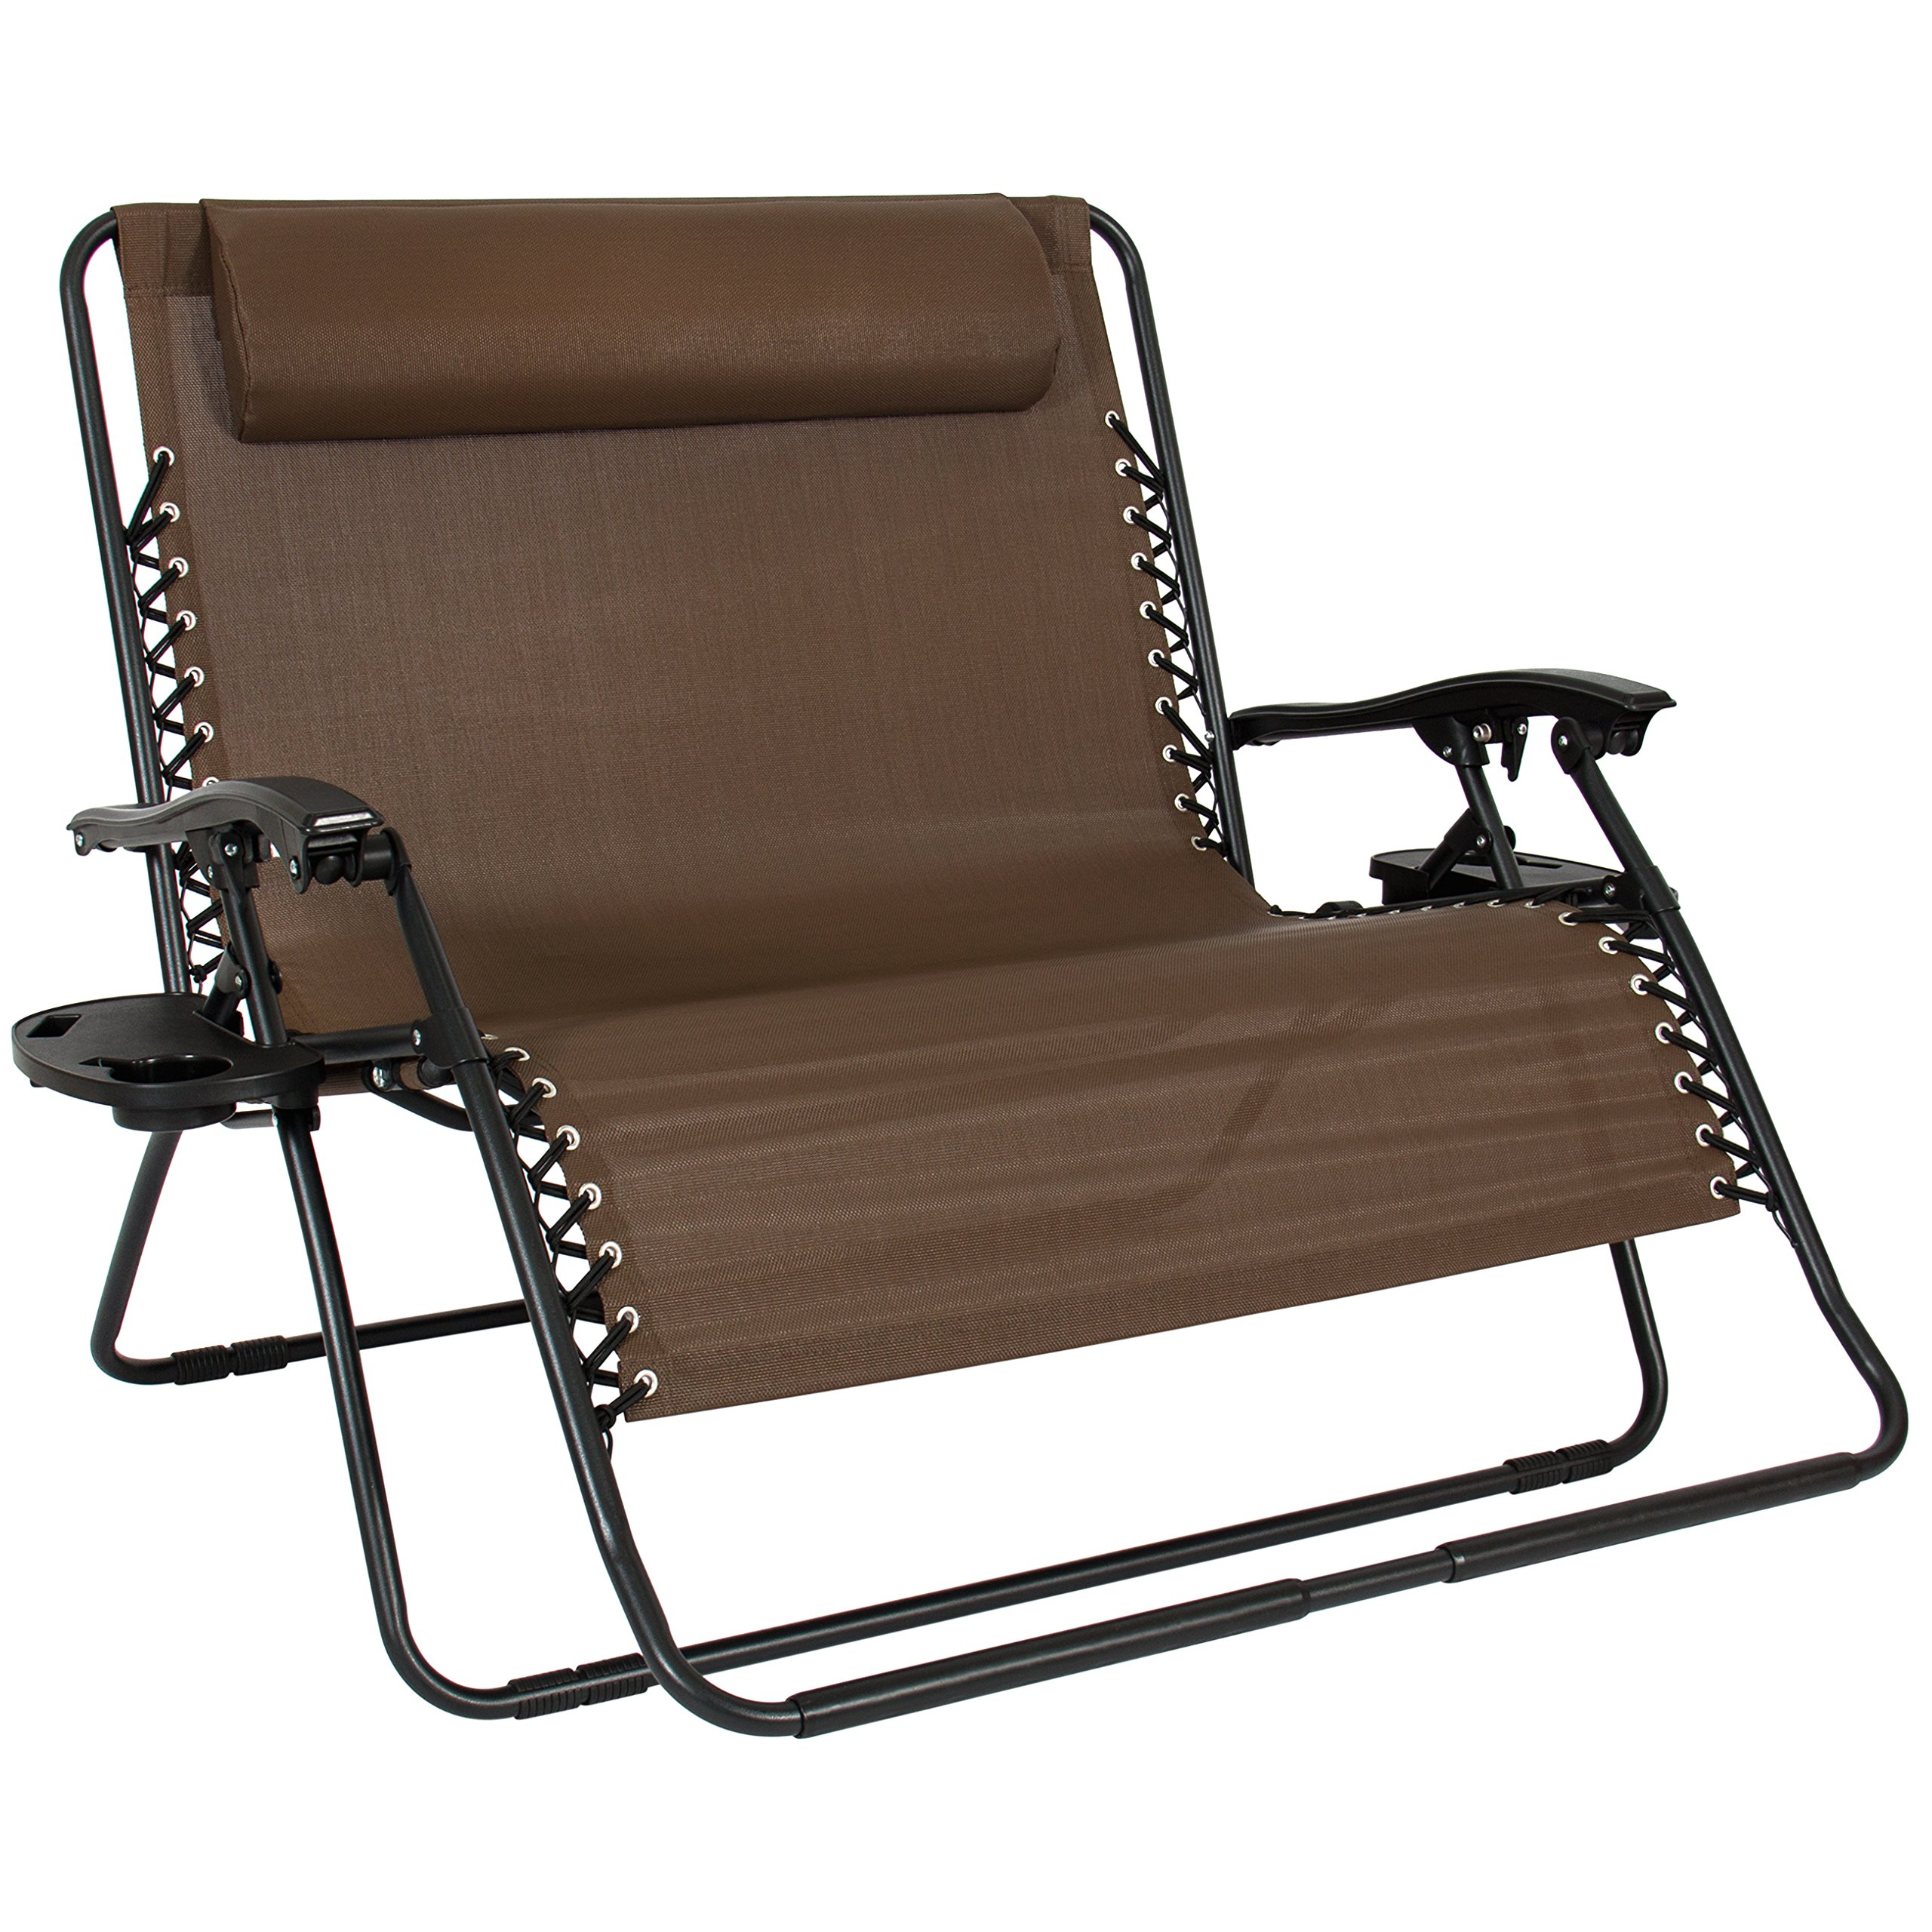 Best Choice Products 2-Person Double Wide Folding Mesh Zero Gravity Chair w/Cup Holders, Brown by Best Choice Products